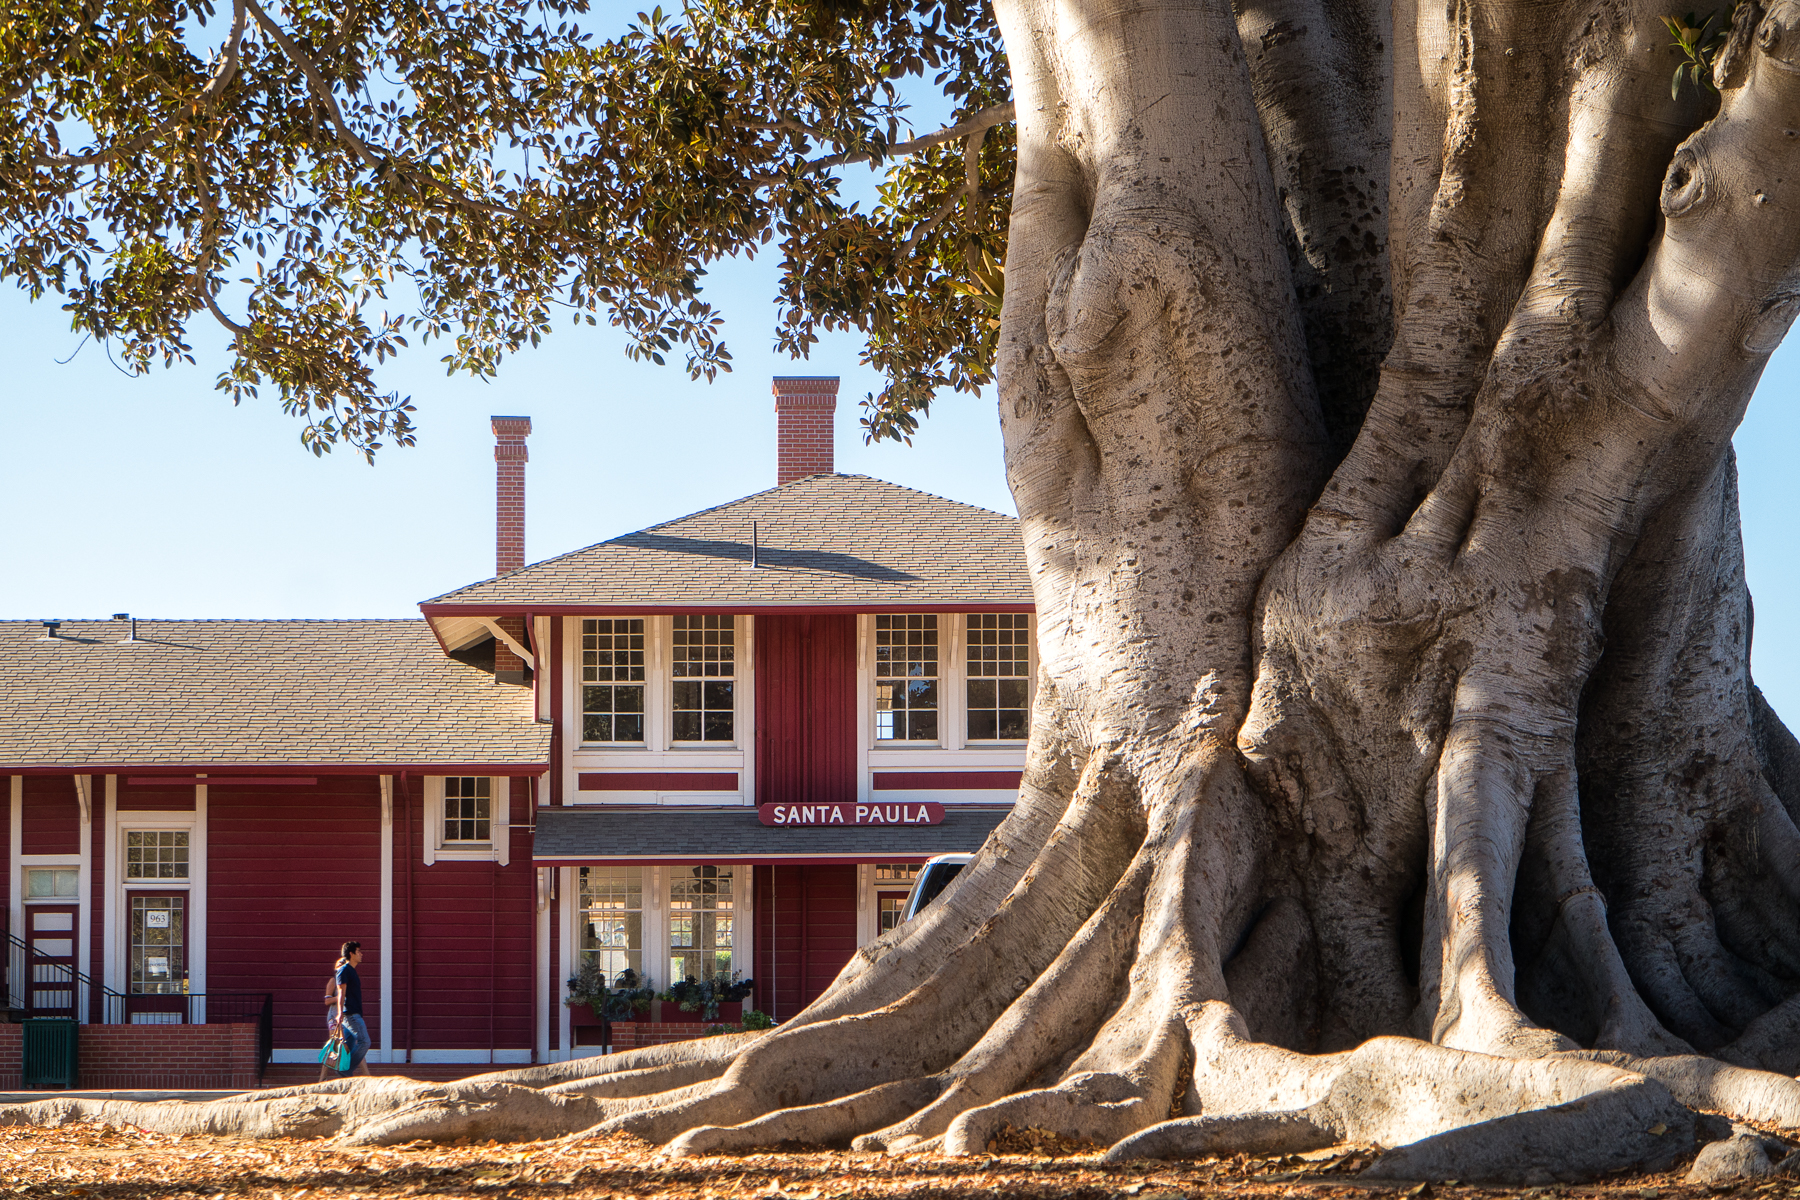 A 135 year old moreton bay fig tree.